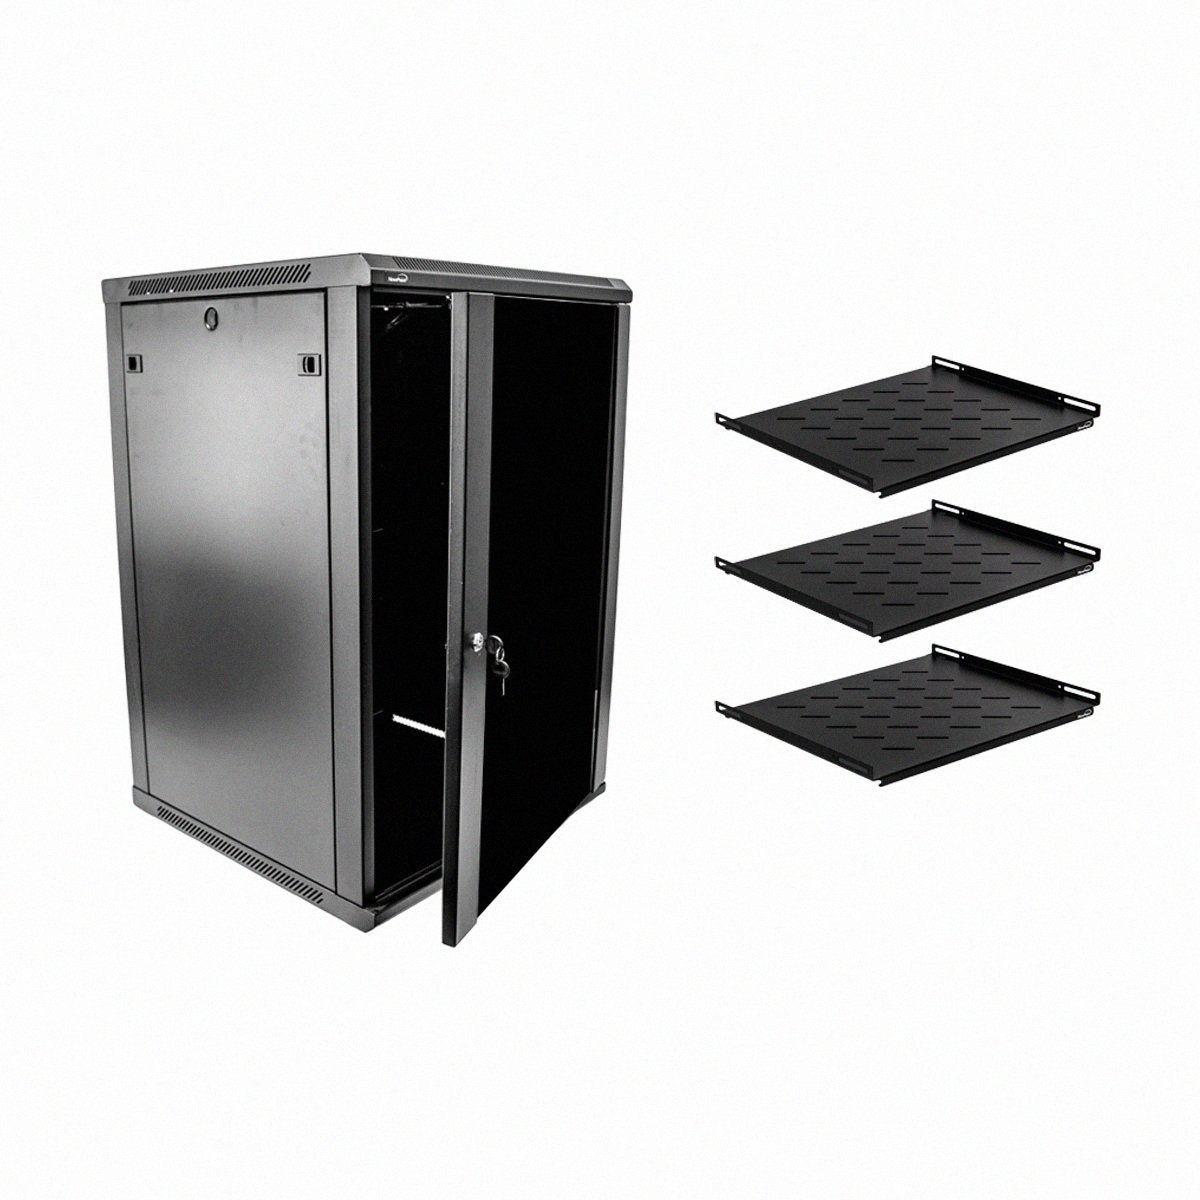 Navepoint 18U Deluxe IT Wallmount Cabinet Enclosure 19-Inch Server Network Rack With Locking Glass Door 24-Inches Deep Black With Shelves